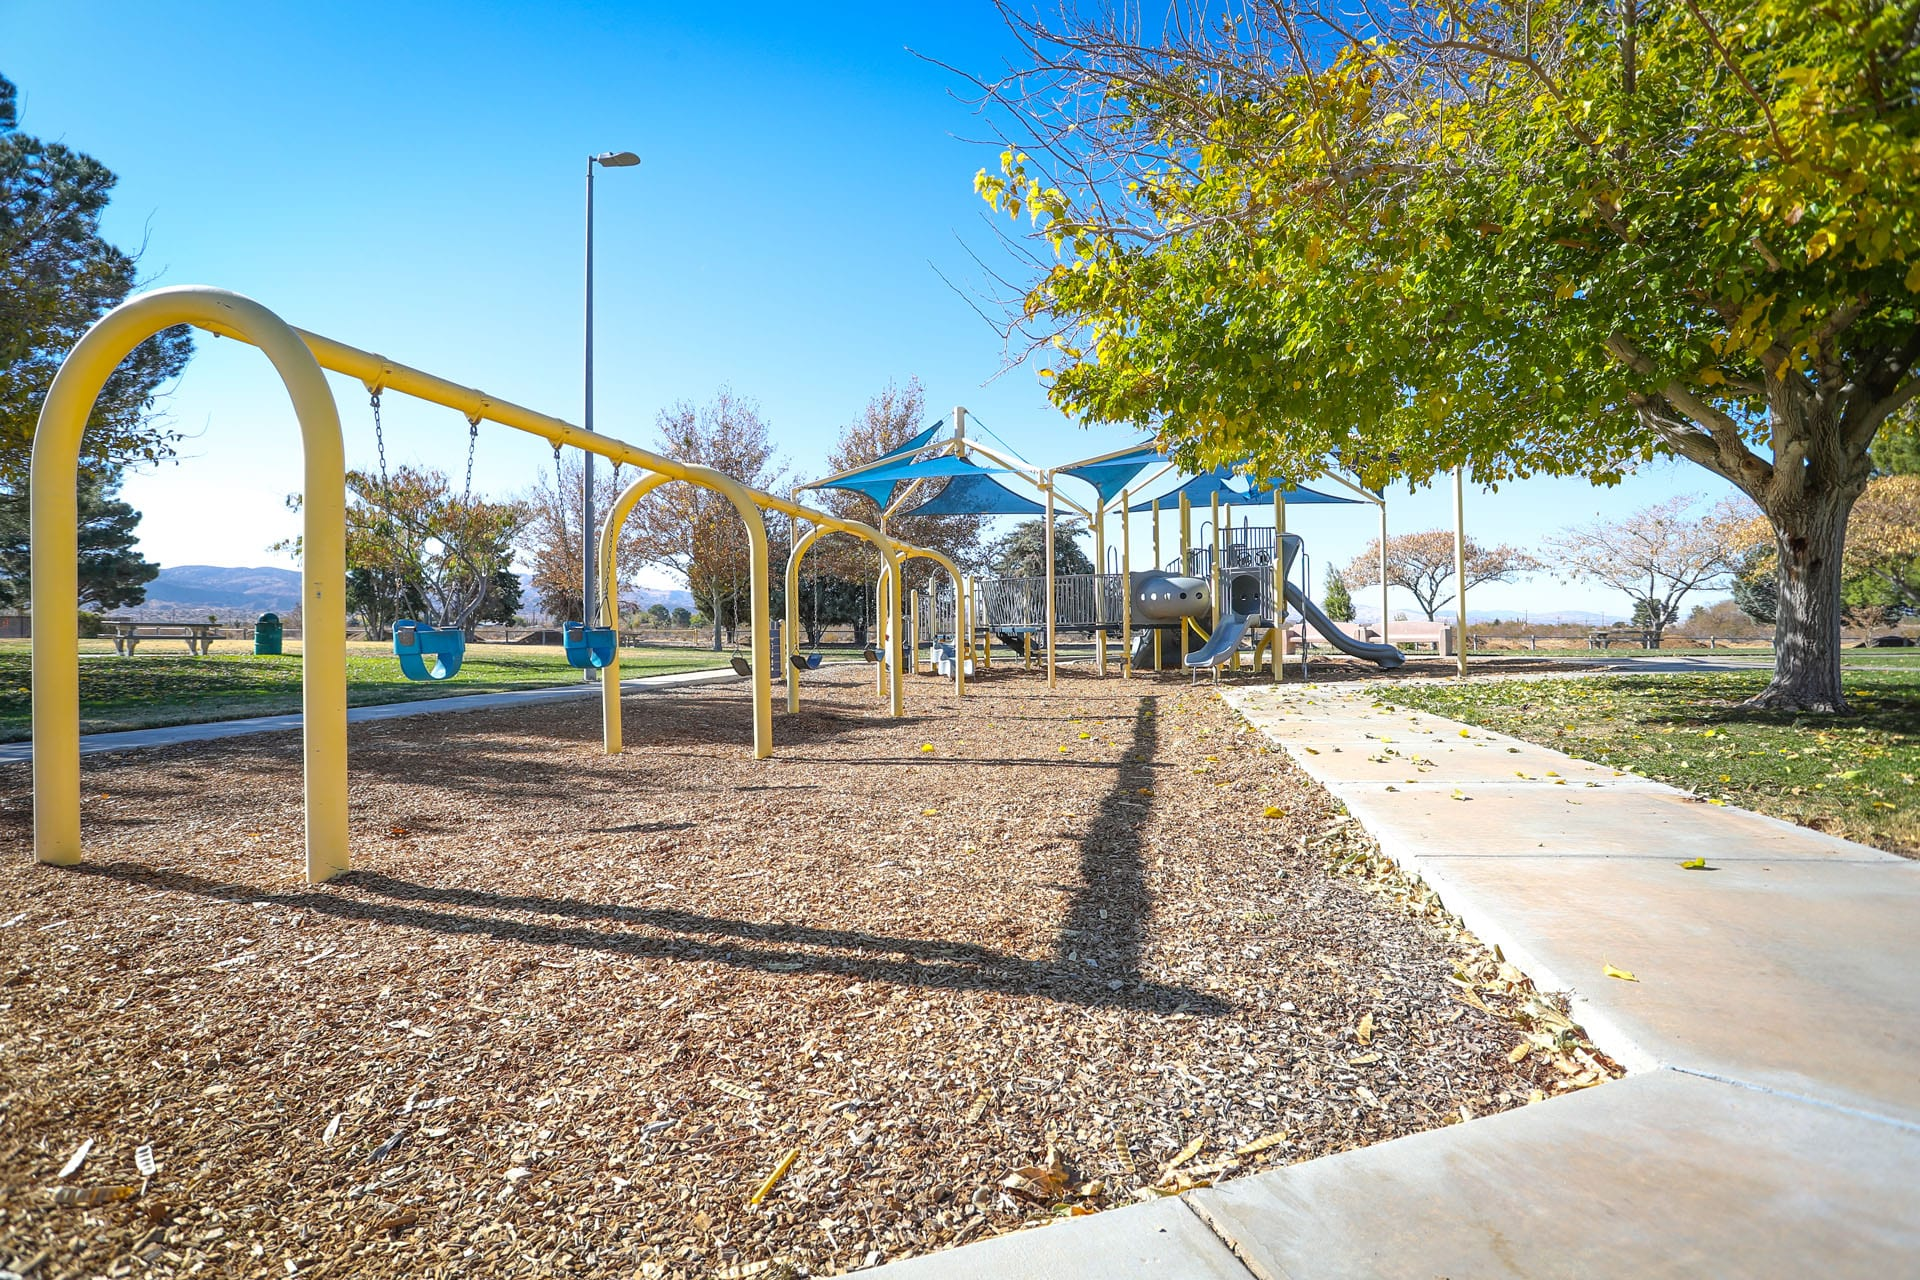 Walkway wrapping a playground and swing set